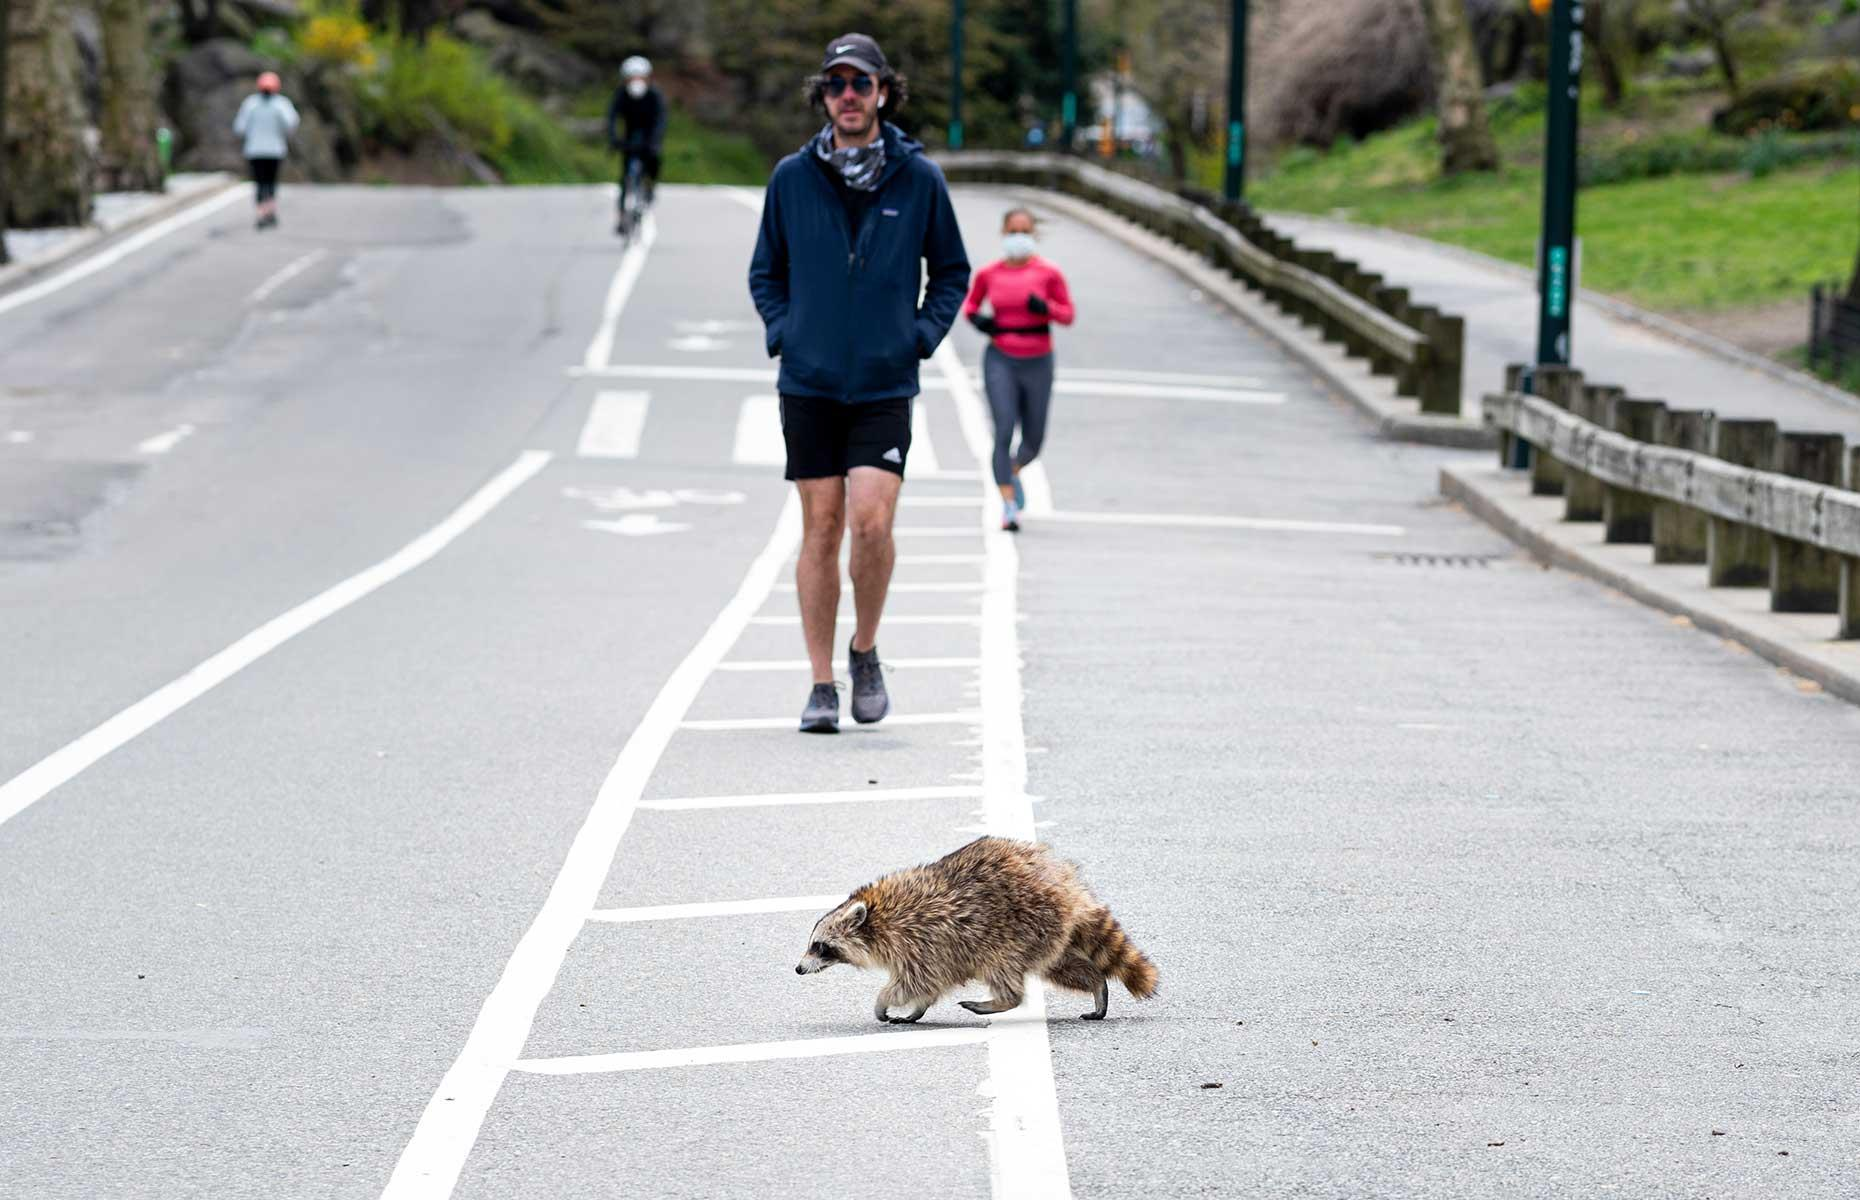 Slide 3 of 31: One unexpected side-effect of the COVID-19 outbreak was the number of emboldened raccoons spotted enjoying New York's Central Park too. Lockdown measures during April contributed to a drop in noise pollution that was especially significant to animals living in urban areas, including this cheeky raccoon who appeared to be giving local joggers a run for their money.